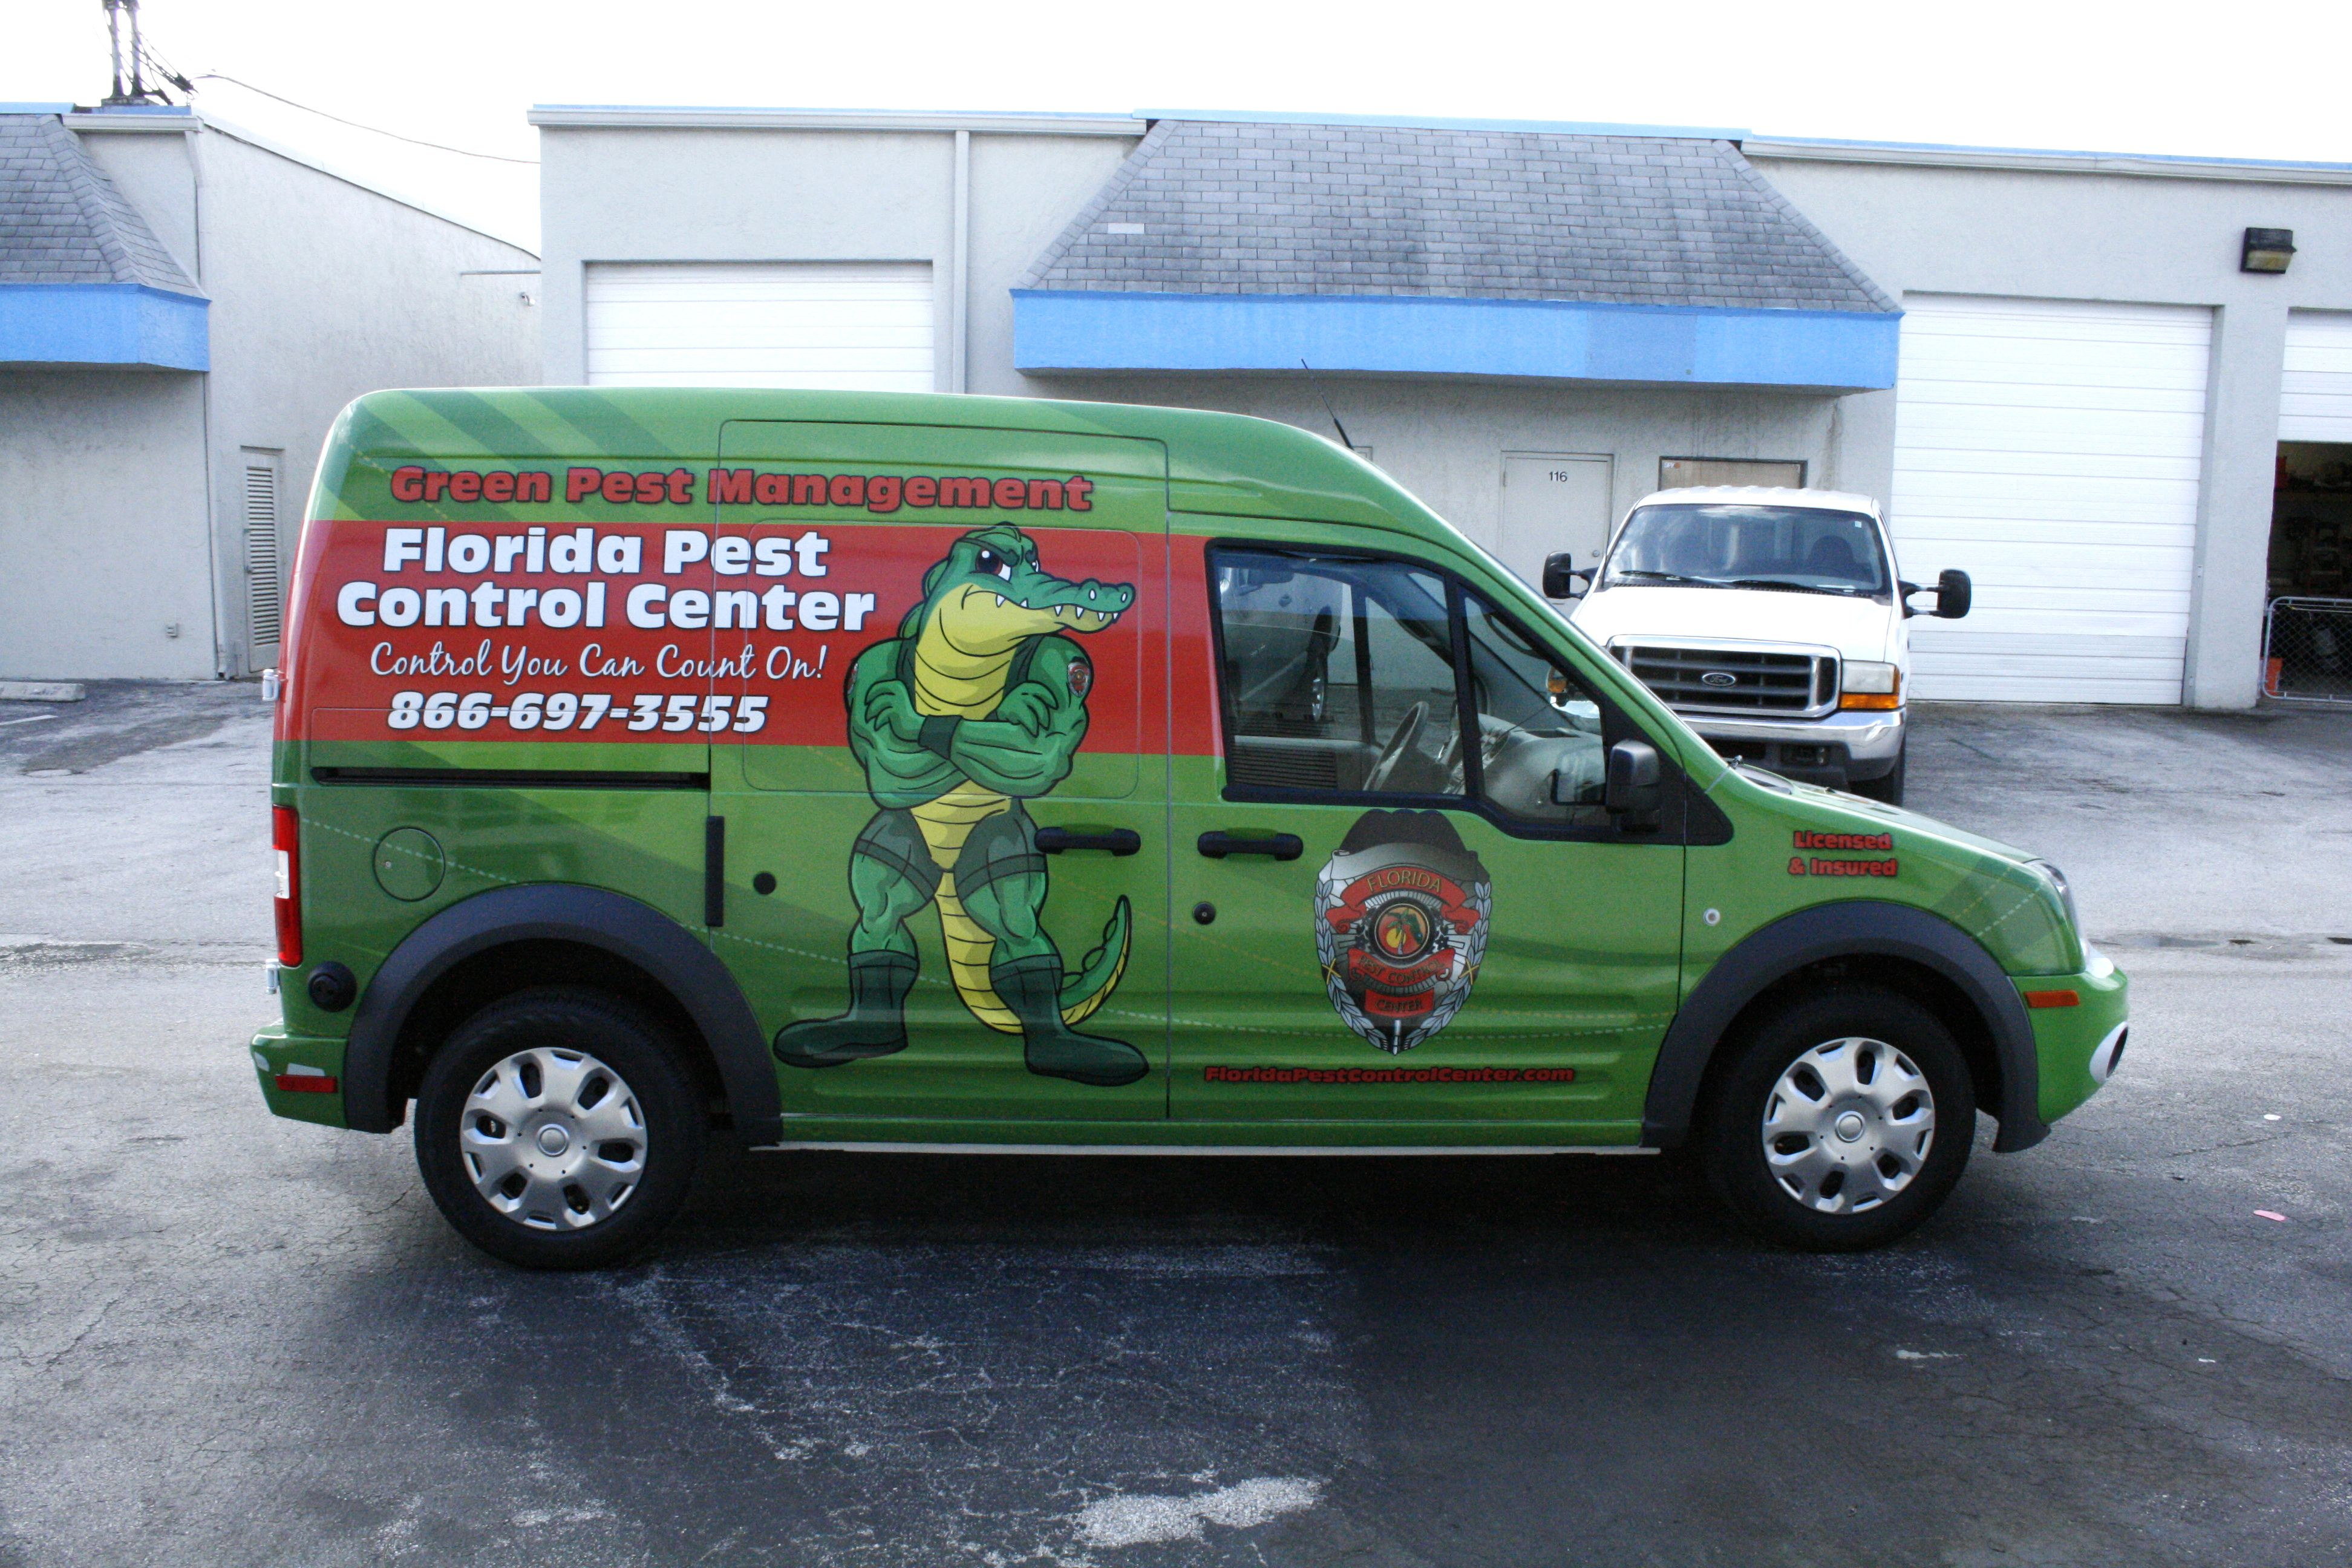 Fort Lauderdale Ford Transit Connect 3m Vinyl Wrap Http Www